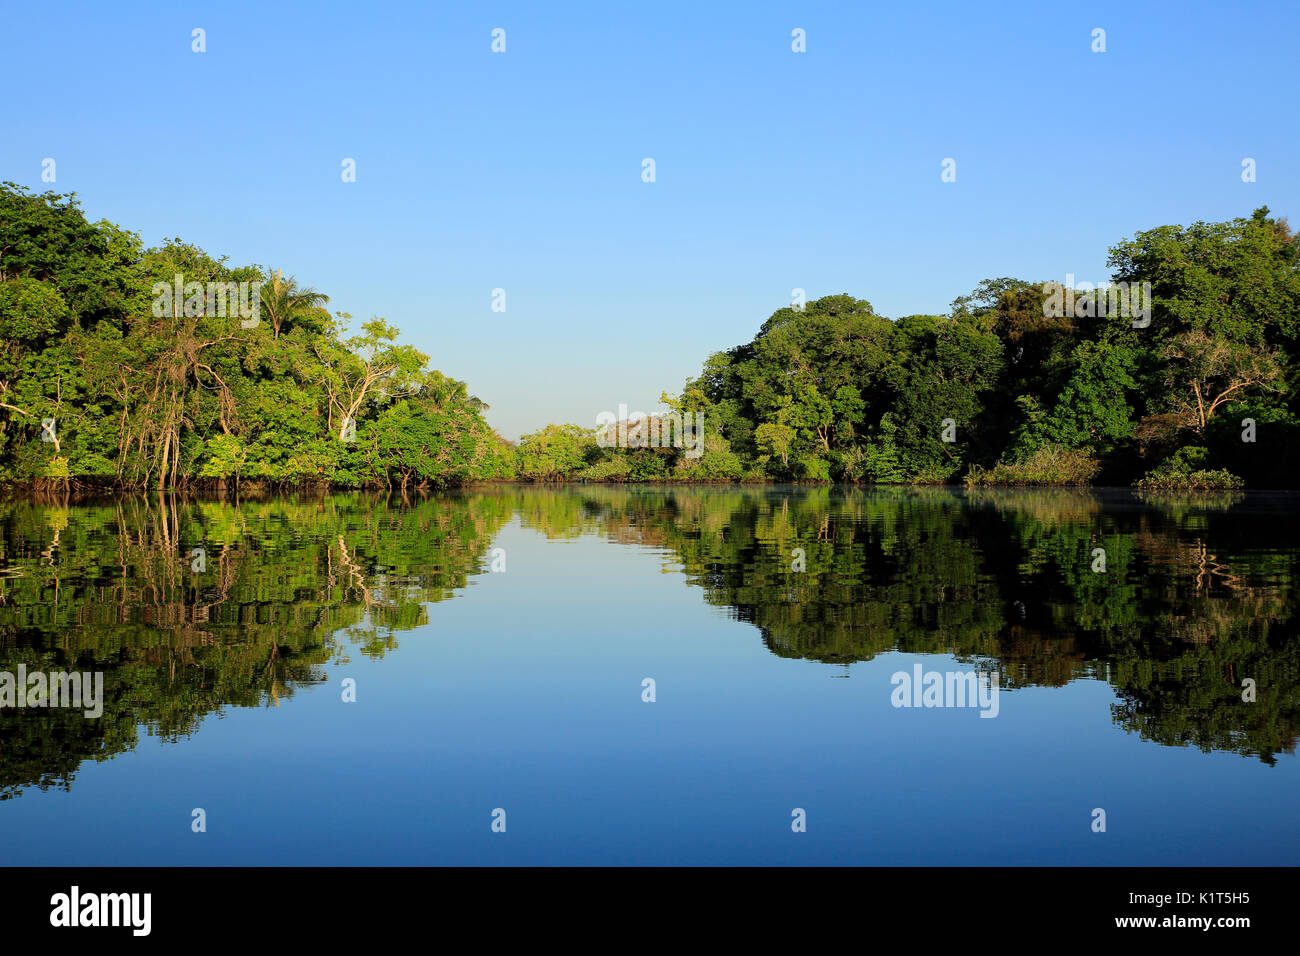 Amazon, the Amazon Rainforest, Amazonas, jungle, rainforest, forest, nature photography, nature wilderness, Brazil, - Stock Image